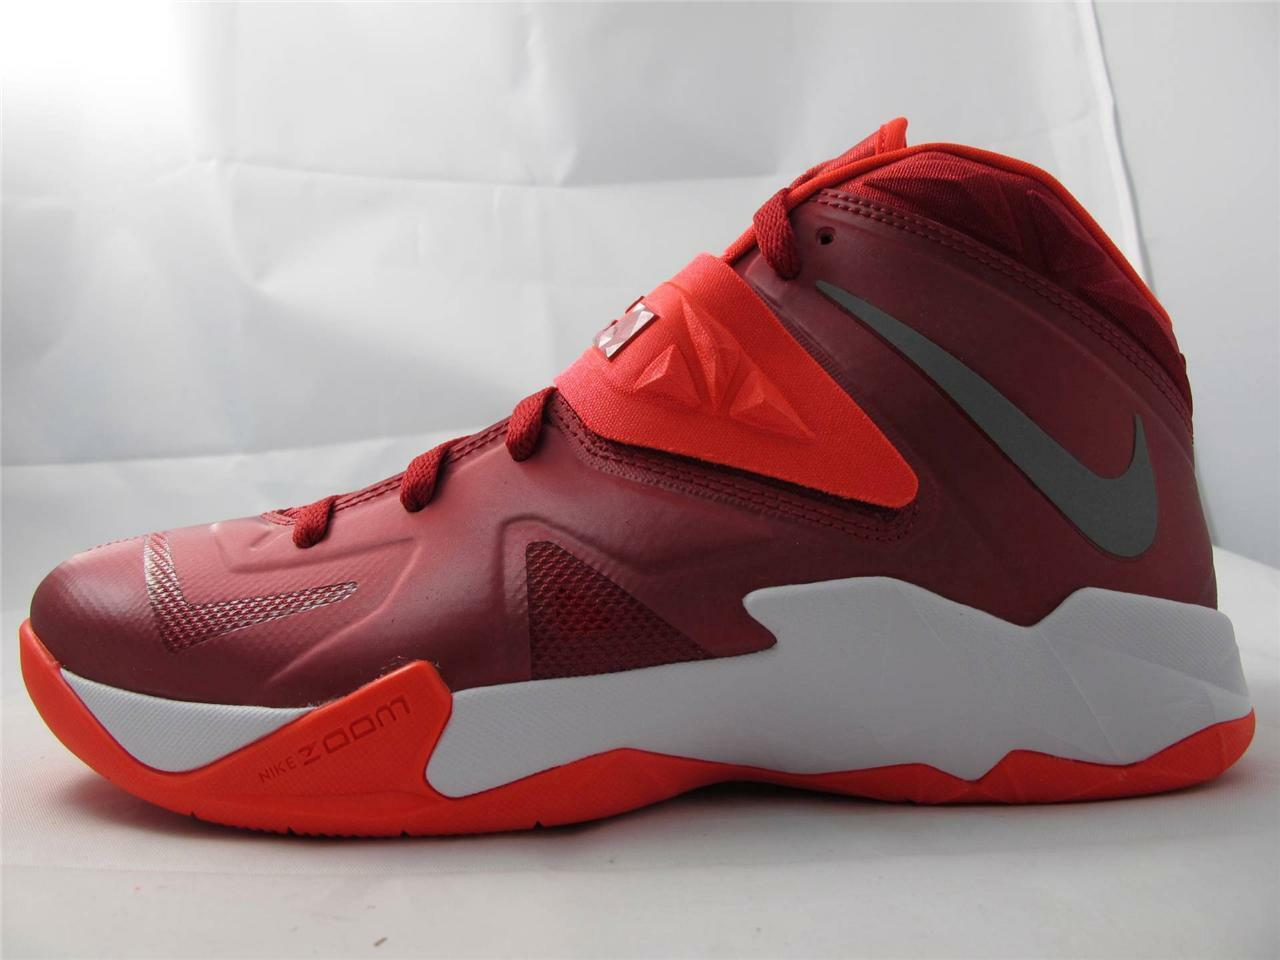 New Mens Nike Lebron Zoom Soldier VII TB Turnschuhe 599263-600